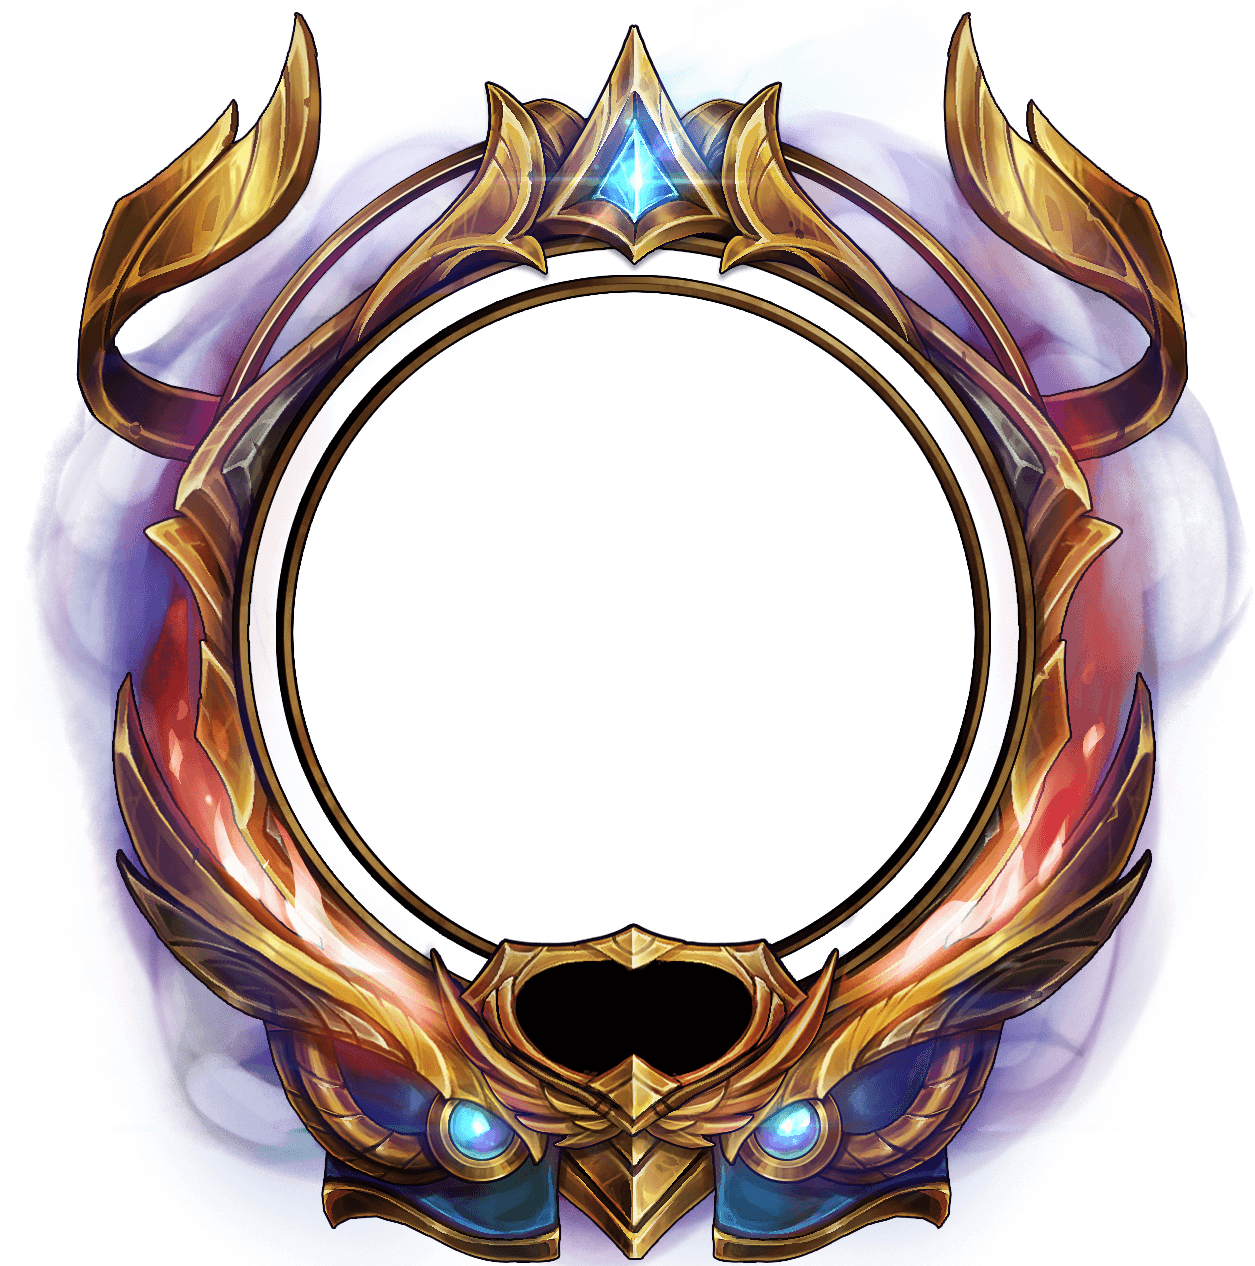 Download HD Level 500 Summoner Icon Border - League Of ...